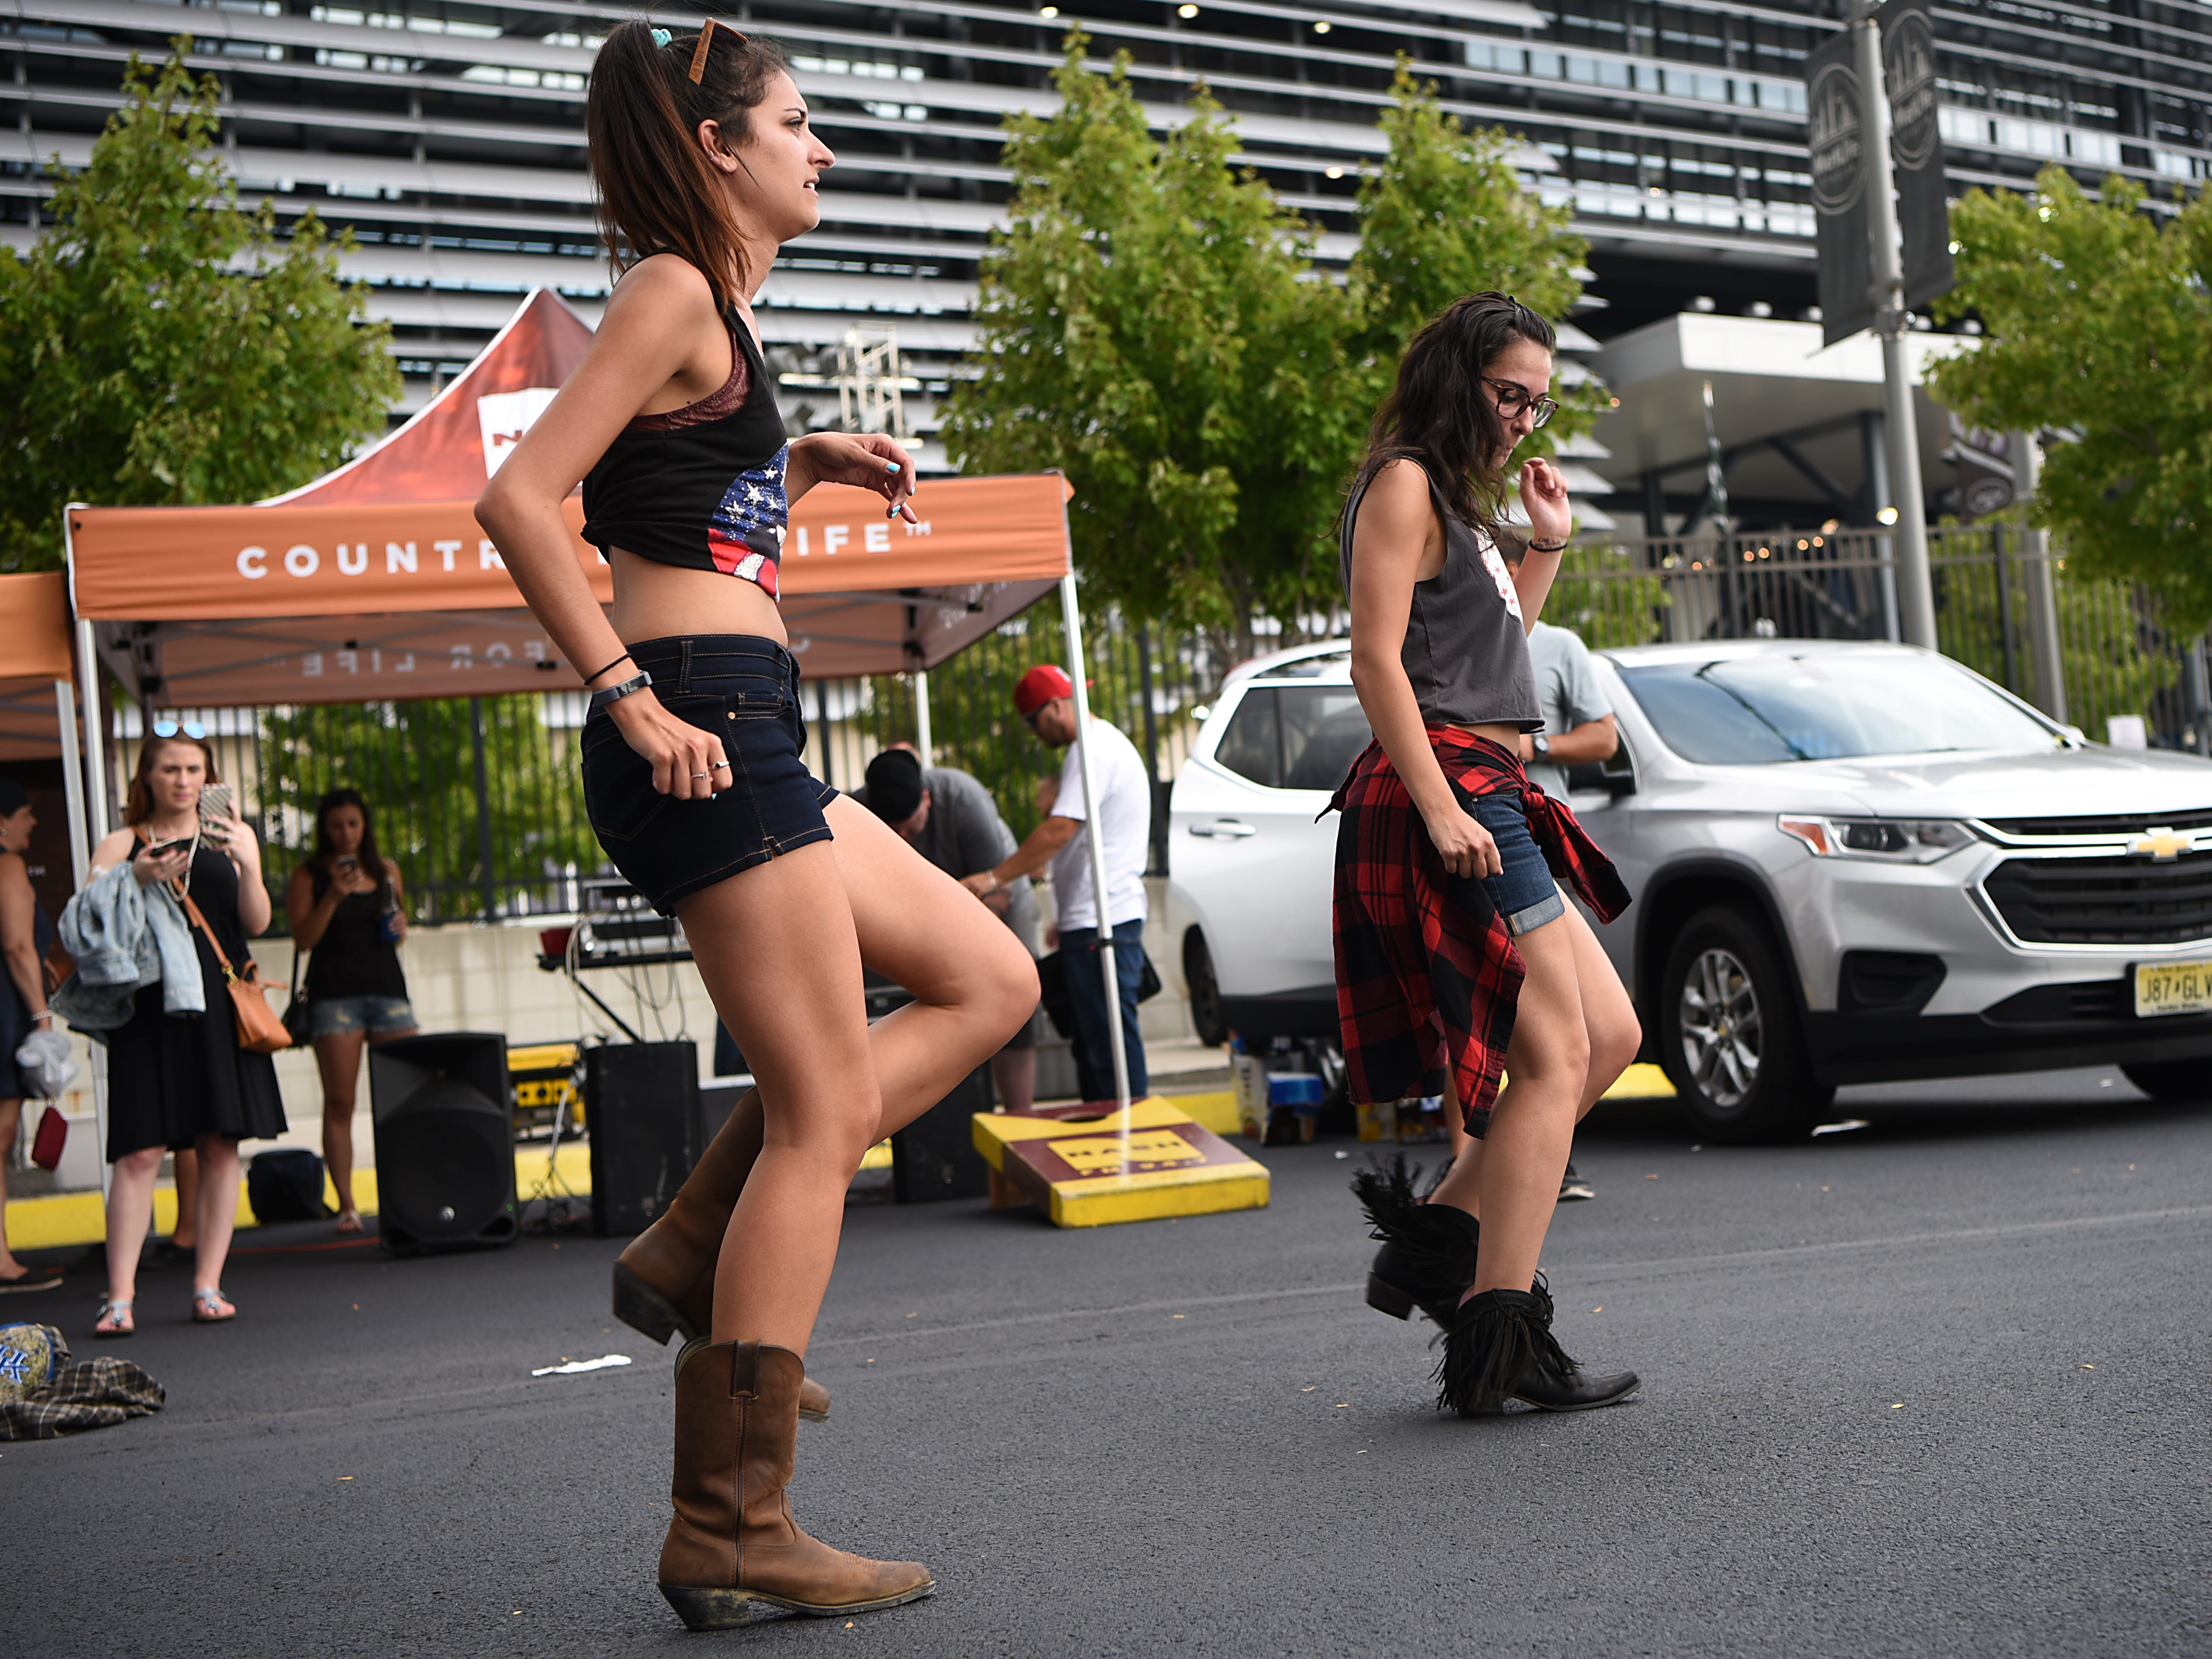 Sisters Jenn Mulé and Christine Mulé from Wantagh, NY line dance in the parking lot prior to the Kenny Chesney concert at MetLife stadium in East Rutherford on Saturday August 18, 2018.